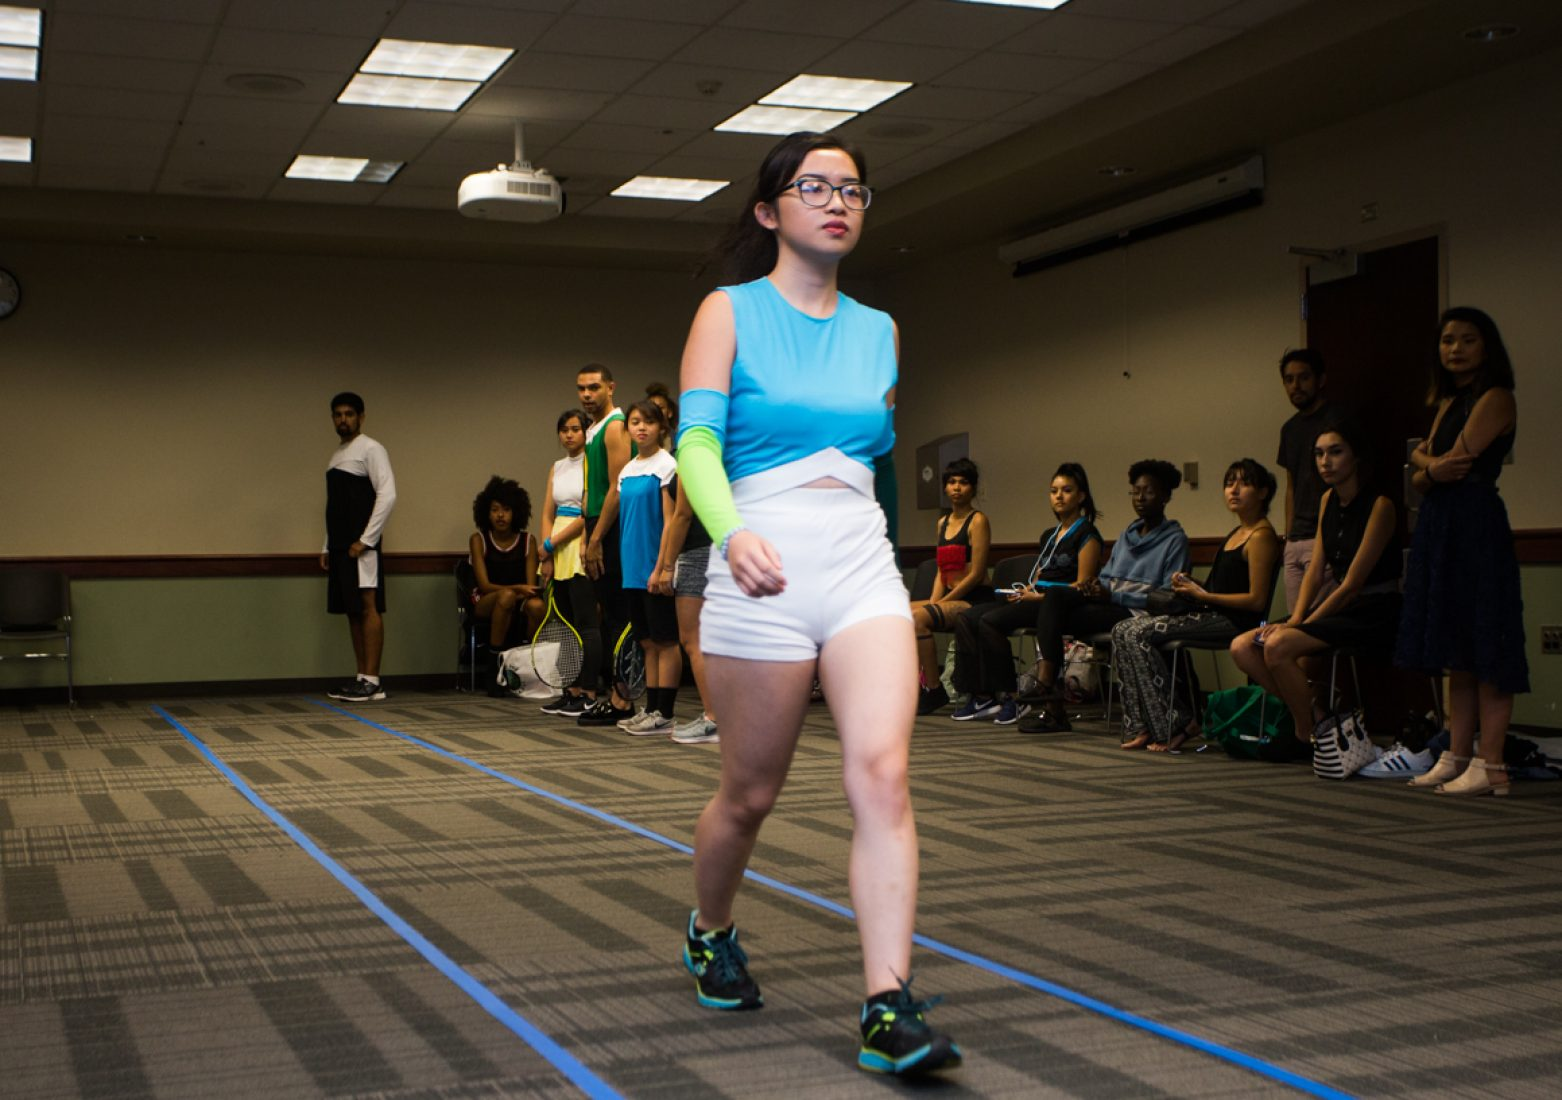 A model practices her runway walk in a Phua Lee design during rehearsal in the University Union Foothill Suite on Wednesday. (Photo by Nicole Fowler)